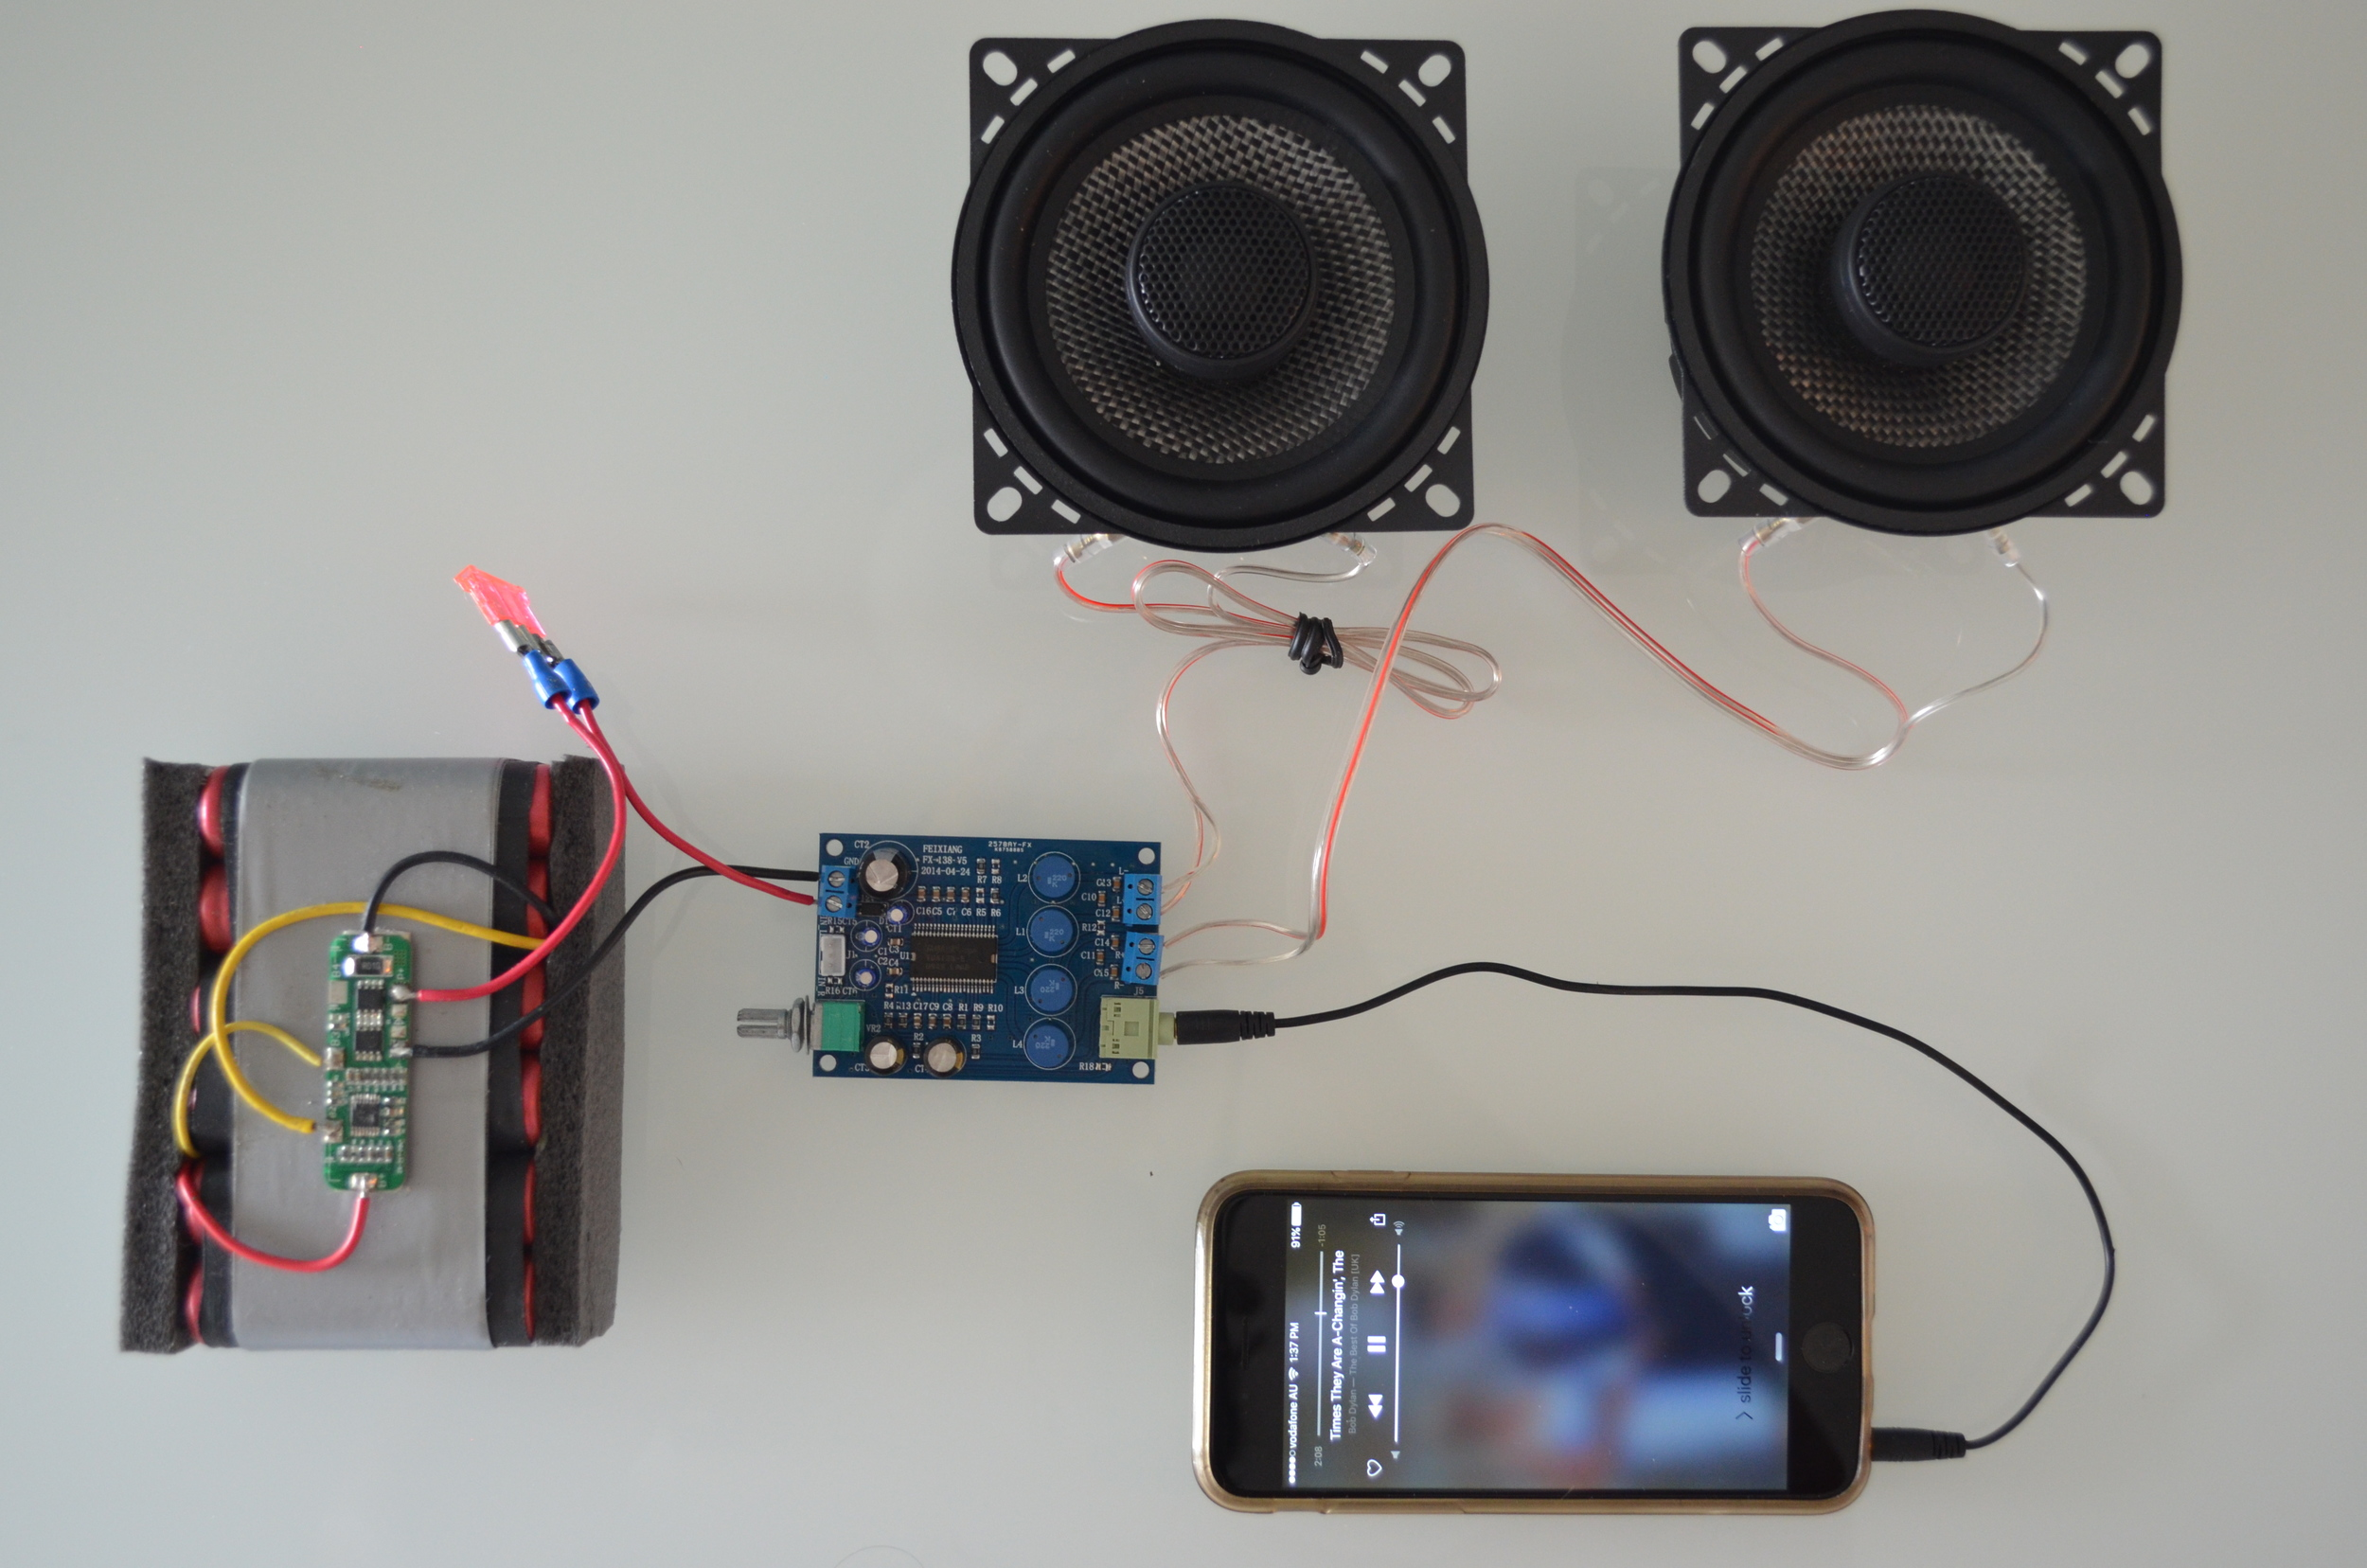 This photo shows the critical components of every audio system. The amplifier is receiving the audio signal from the iPhone. The amplifier 'boosts' the signal via the energy provided by the battery and sends the signal to the speakers.